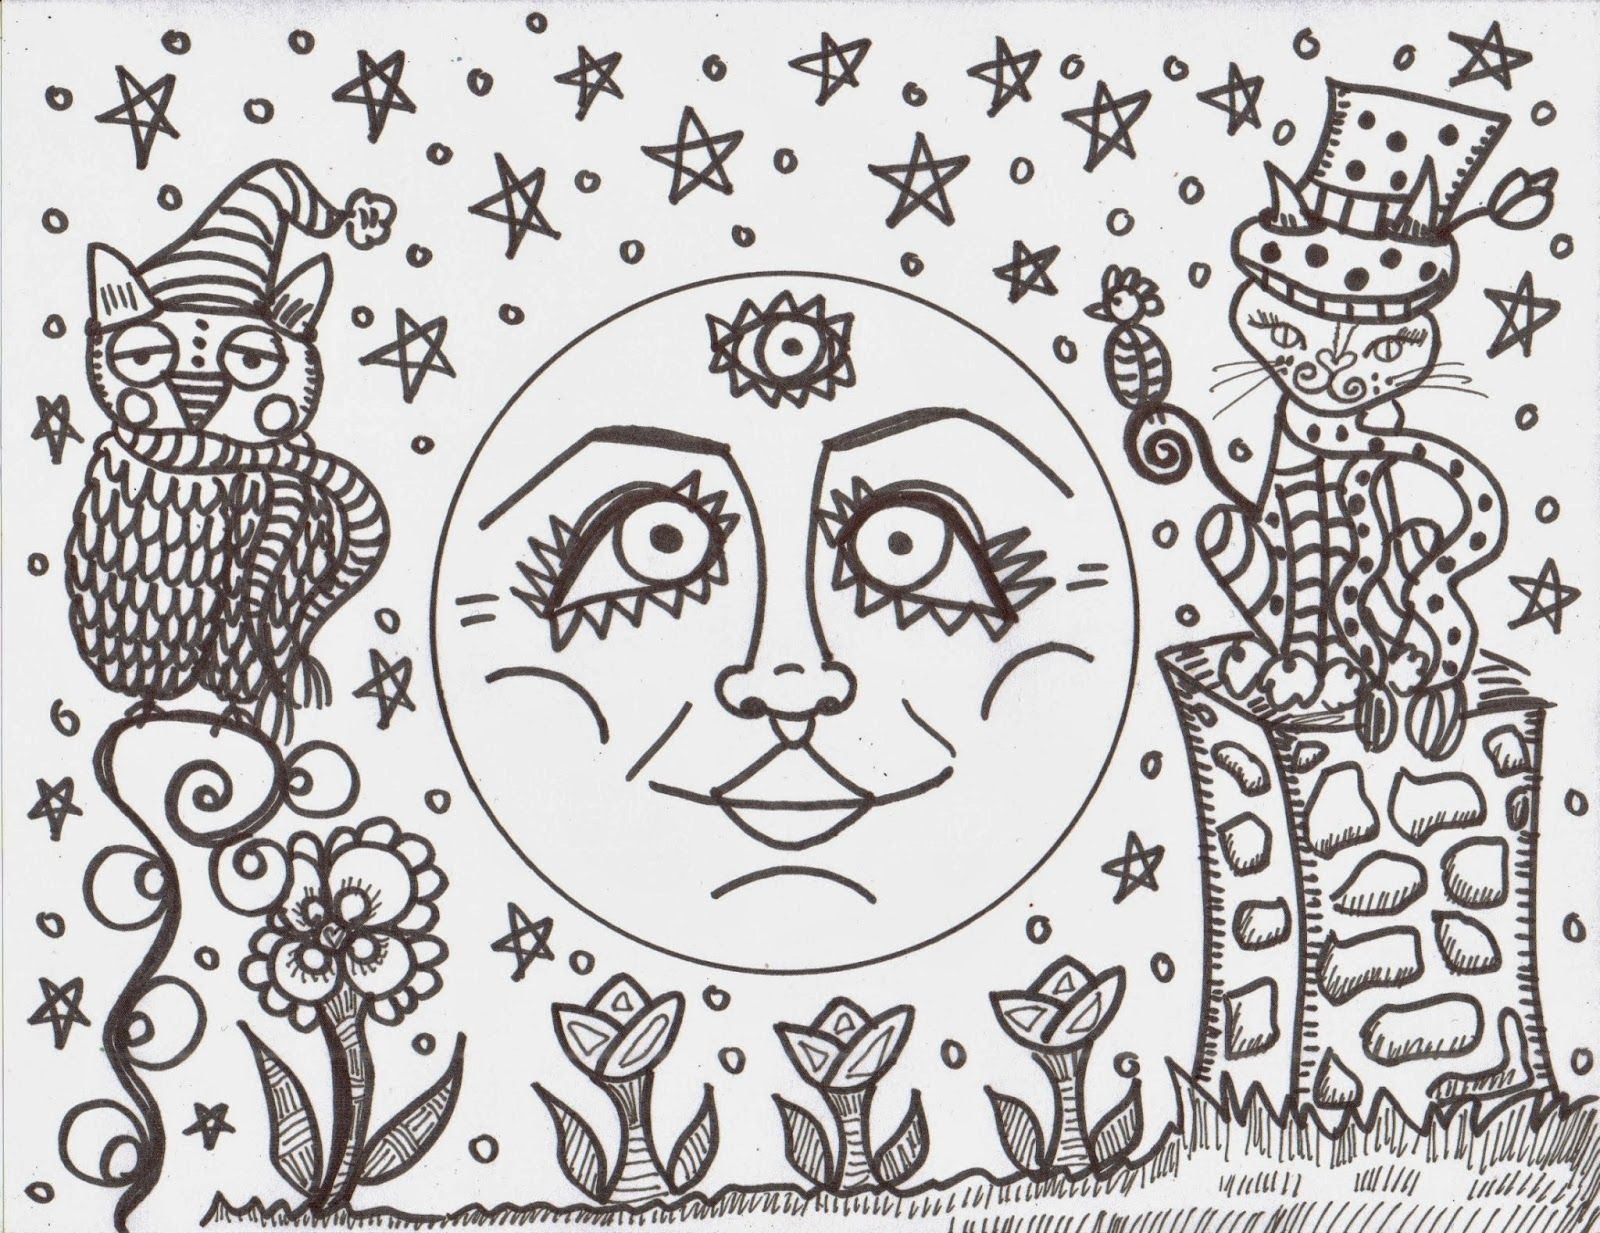 Hippie Coloring Pages (16 Pictures) - Colorine.net | 12606